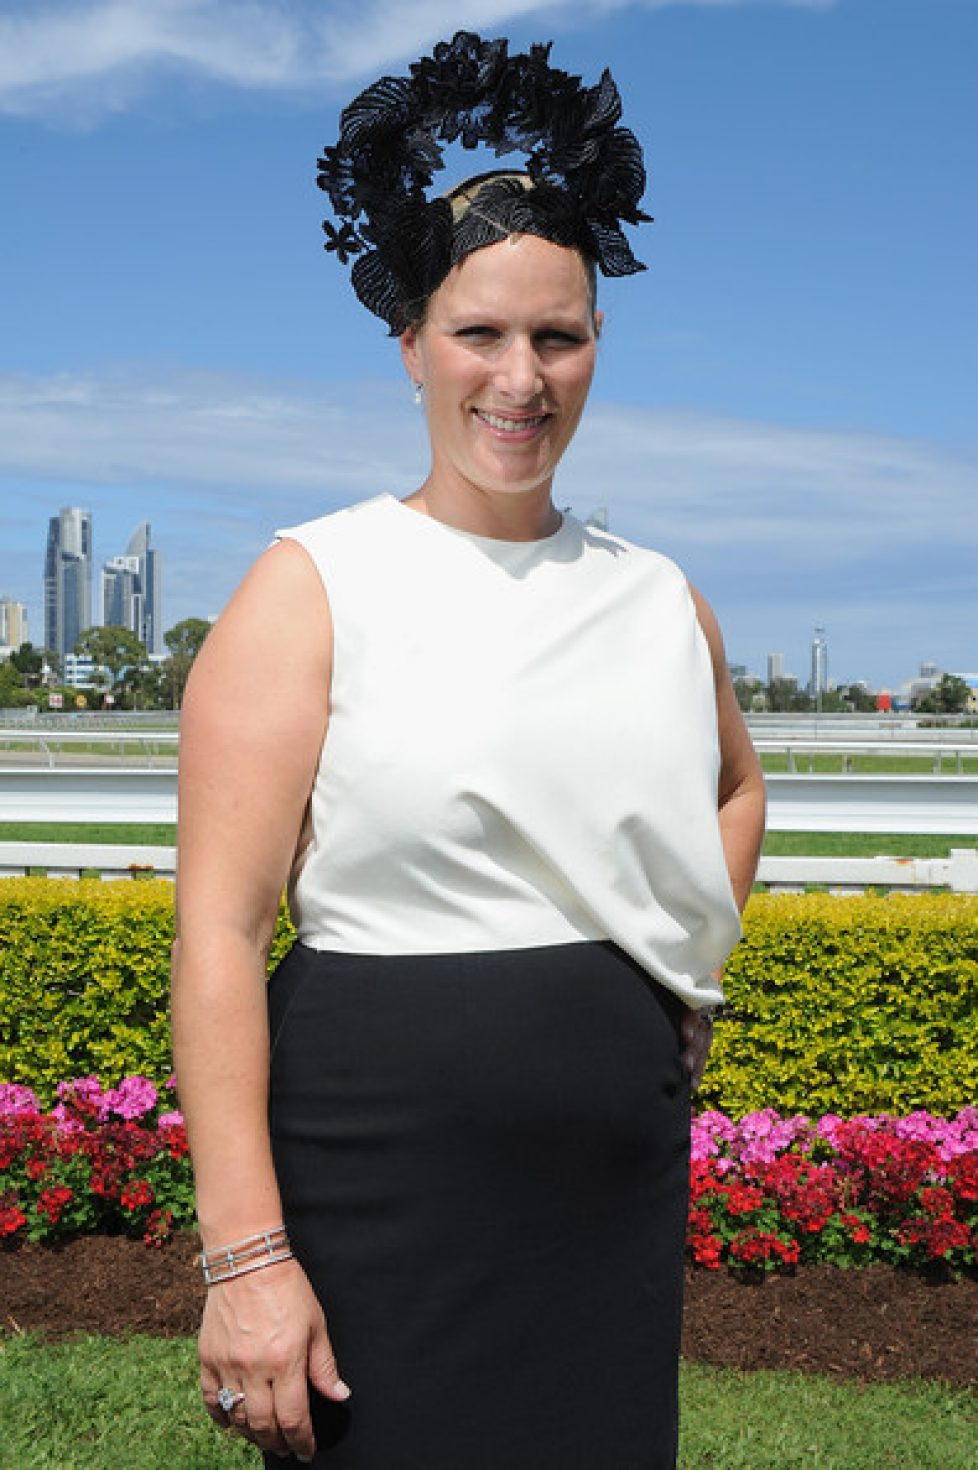 Zara+Phillips+Arrives+Magic+Millions+Race+qQvqVk2tfYil